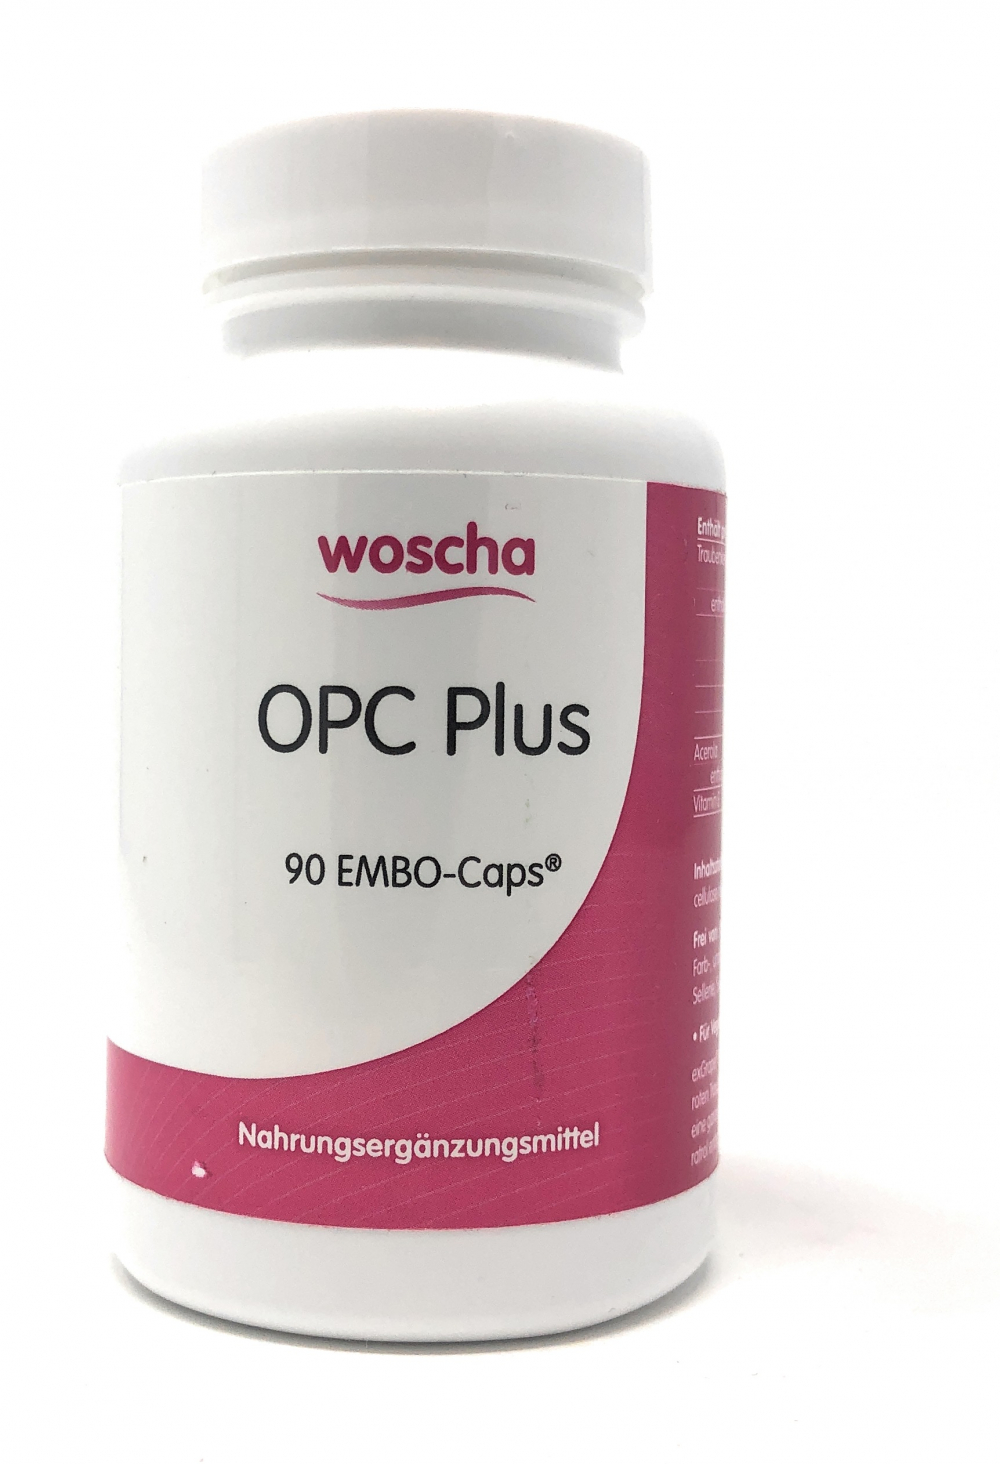 woscha OPC Plus 90 Embo-Caps (54g) (vegan)